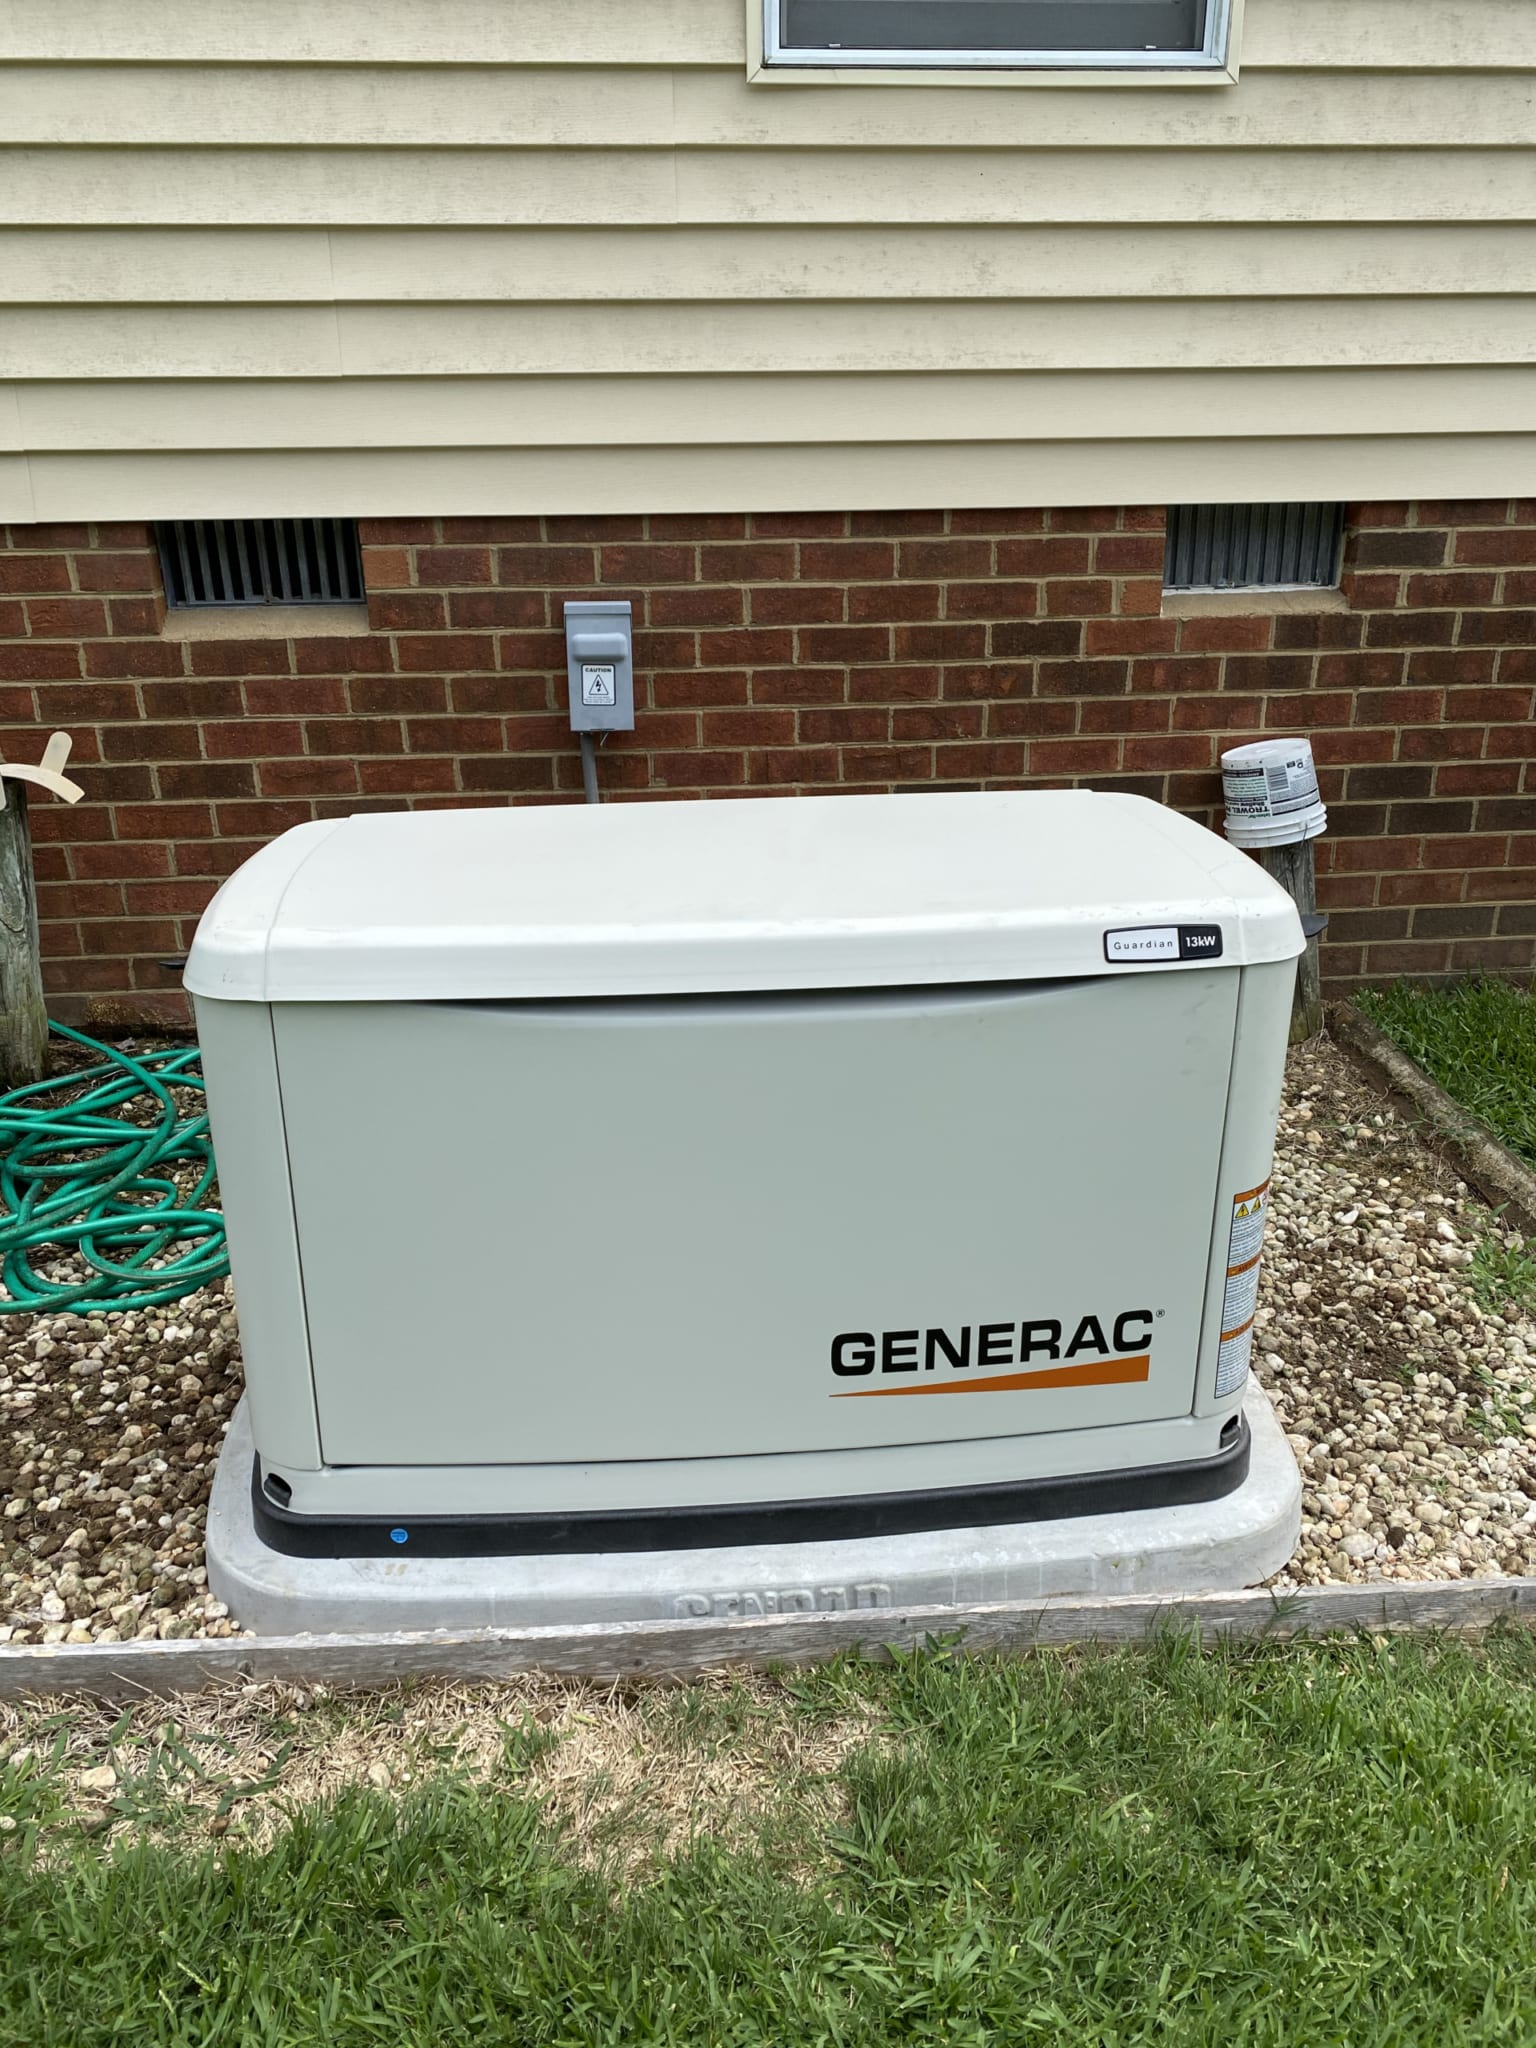 7.8.20 Chesterfield 2 Generac Automatic Standby Generator